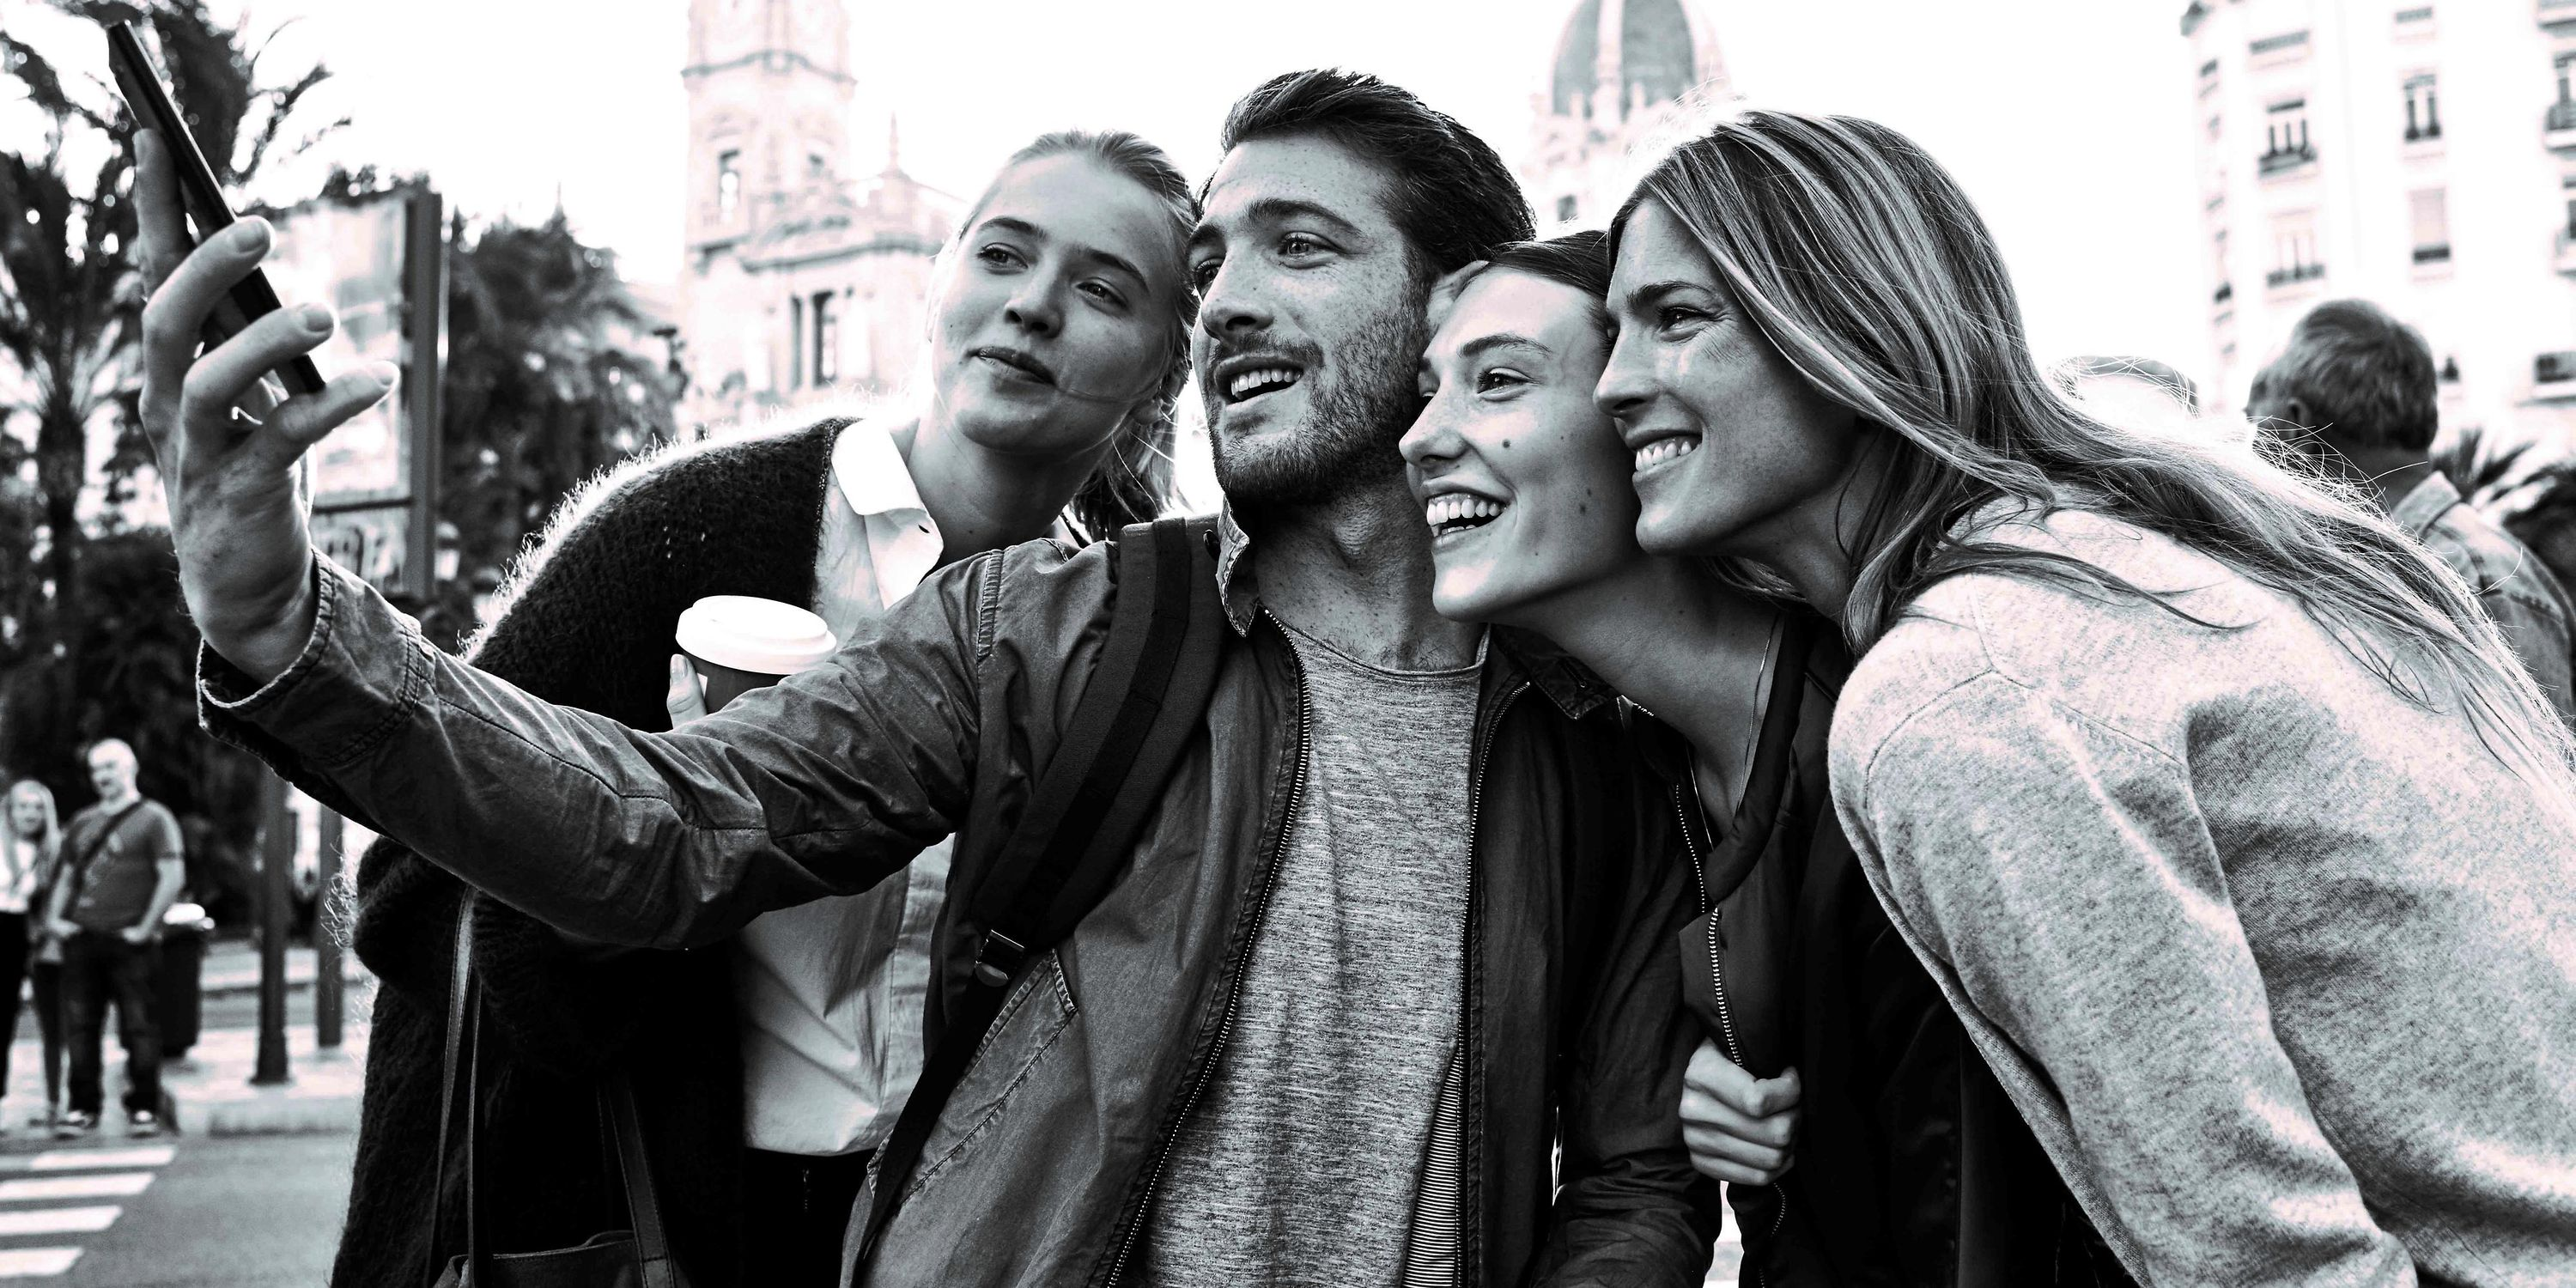 Four young people taking a selfie.